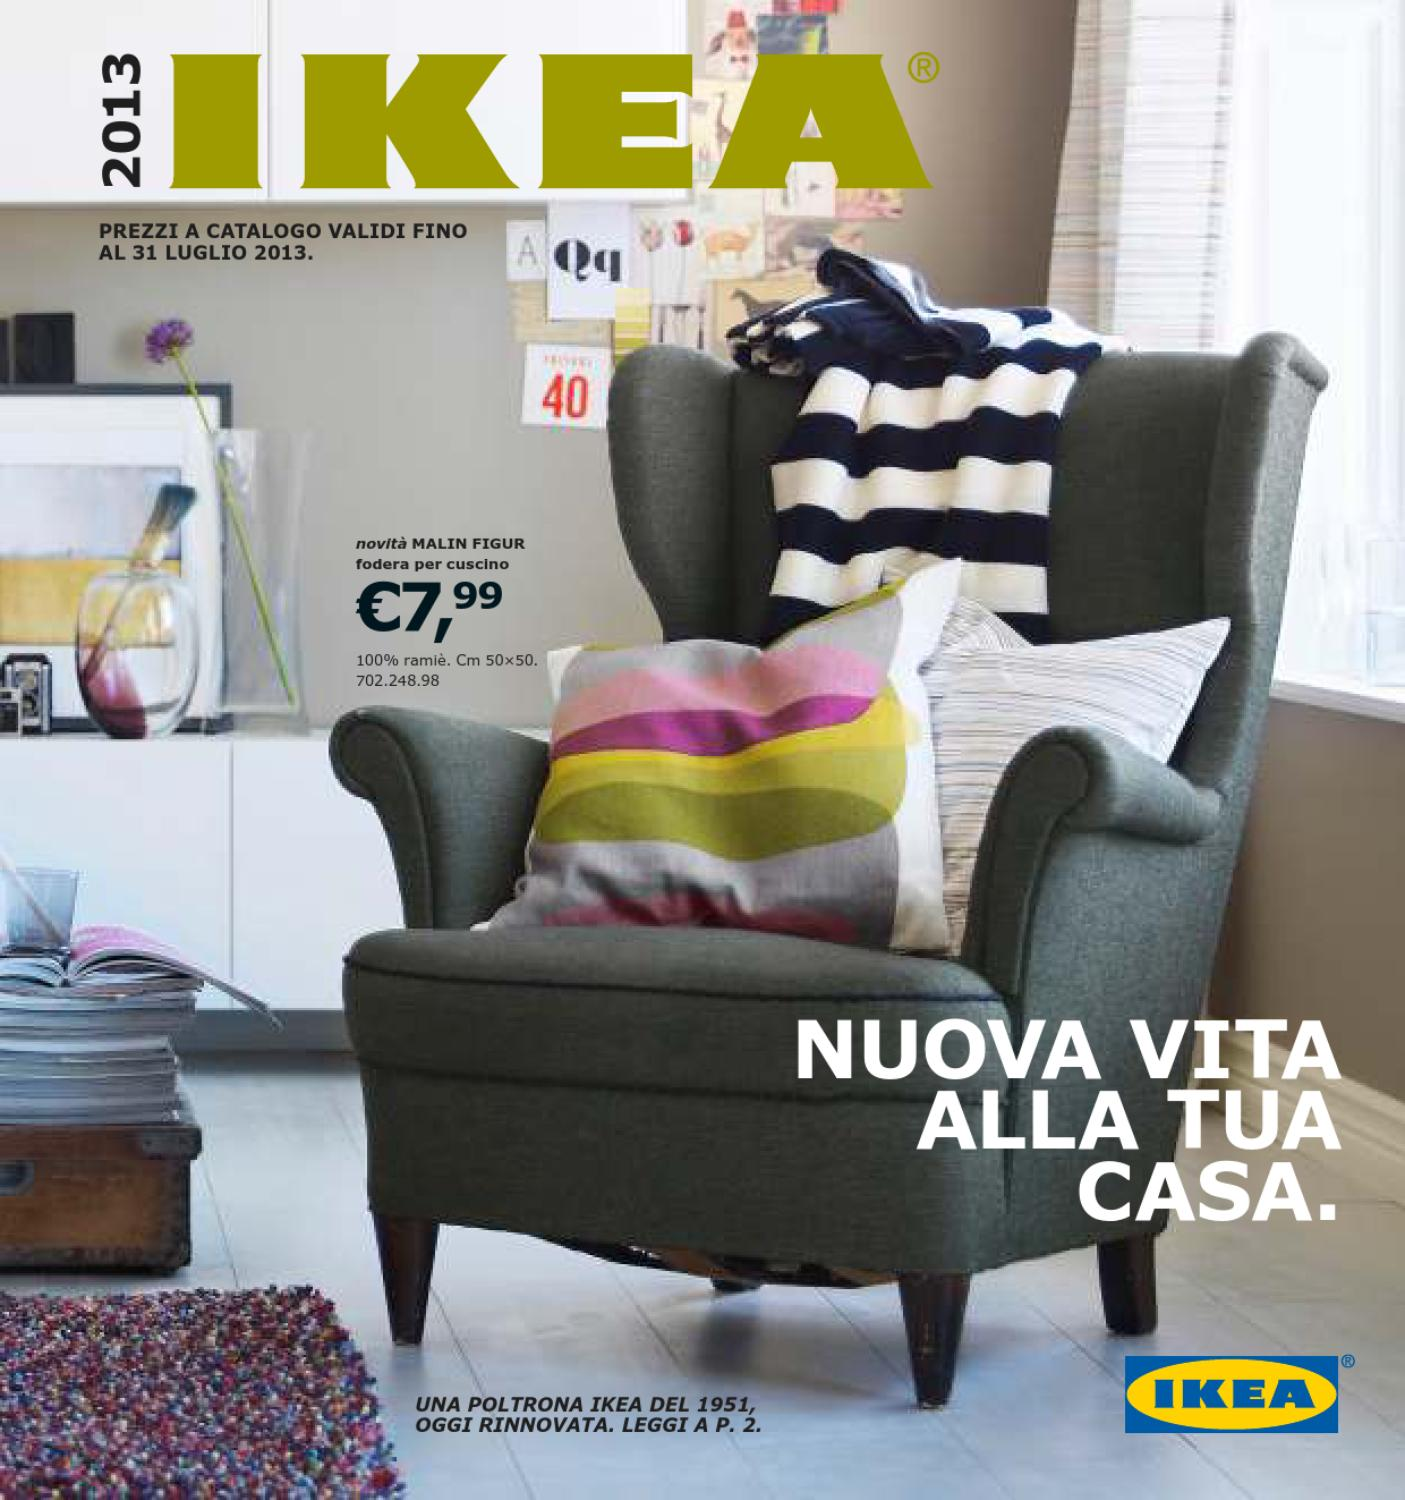 Ikea Catalogo By Nicola Culatello Issuu